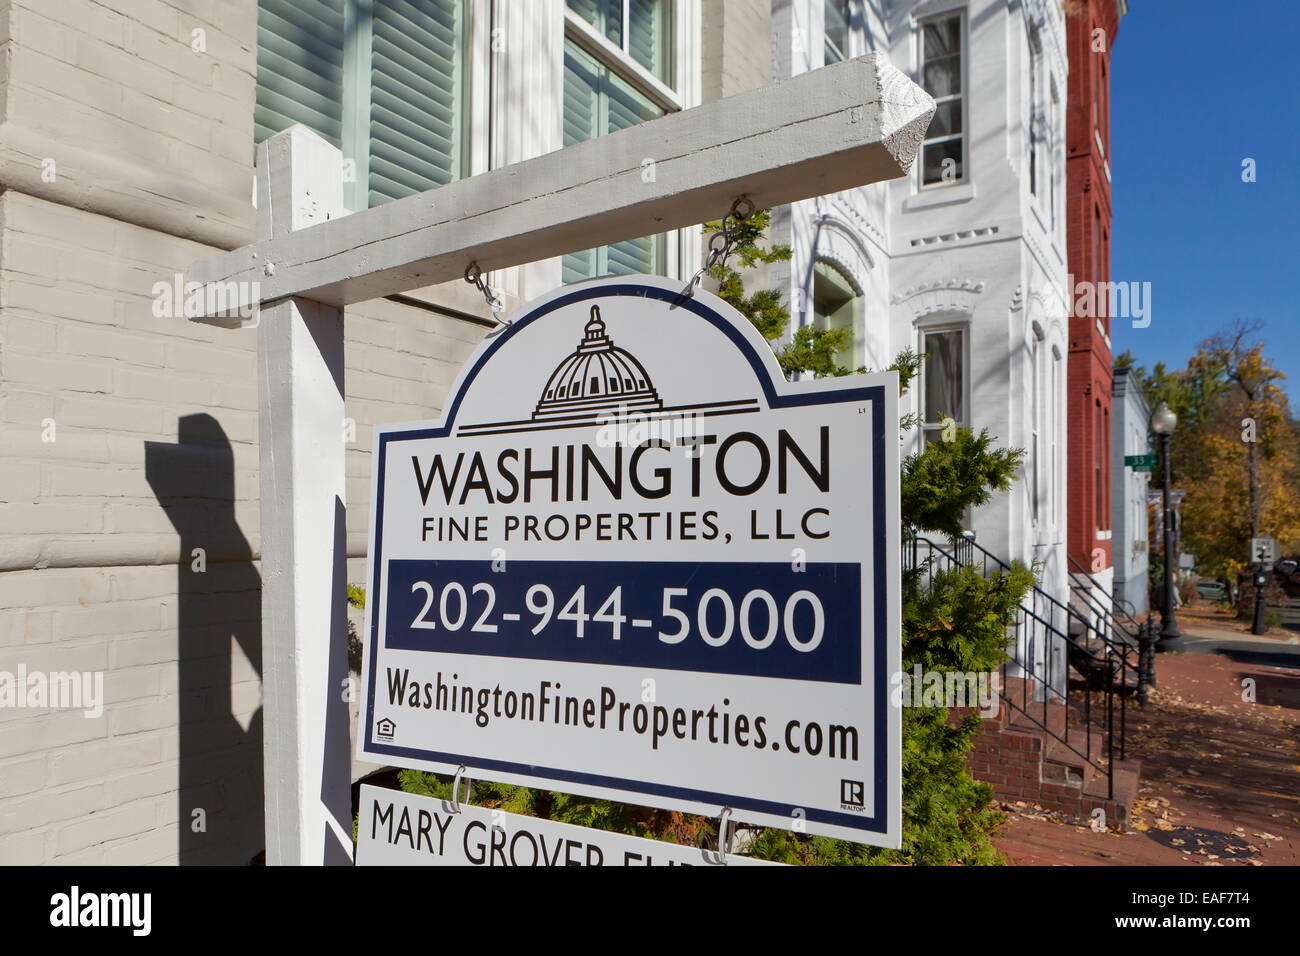 Realty sign on brick house - Georgetown, Washington, DC USA - Stock Image